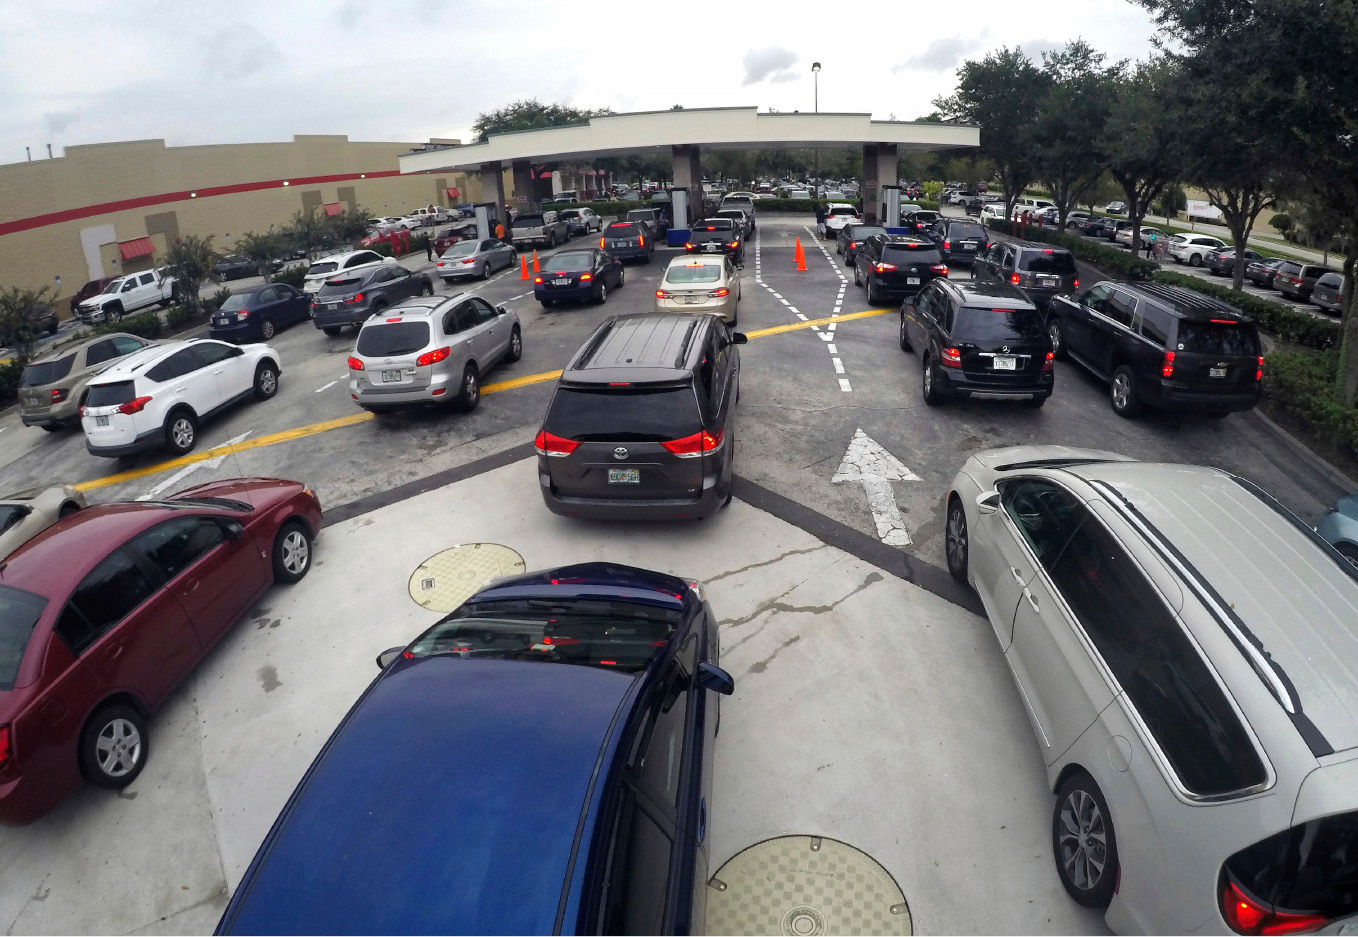 Drivers wait in line for gasoline   in Altamonte Springs, Fla., ahead of the anticipated arrival of Hurricane Irma, Wednesday, Sept. 6, 2017. Irma roared into the Caribbean with record force early Wednesday, its 185-mph winds shaking homes and flooding buildings on a chain of small islands along a path toward Puerto Rico, Cuba and Hispaniola and a possible direct hit on densely populated South Florida.  (Joe Burbank/Orlando Sentinel via AP)